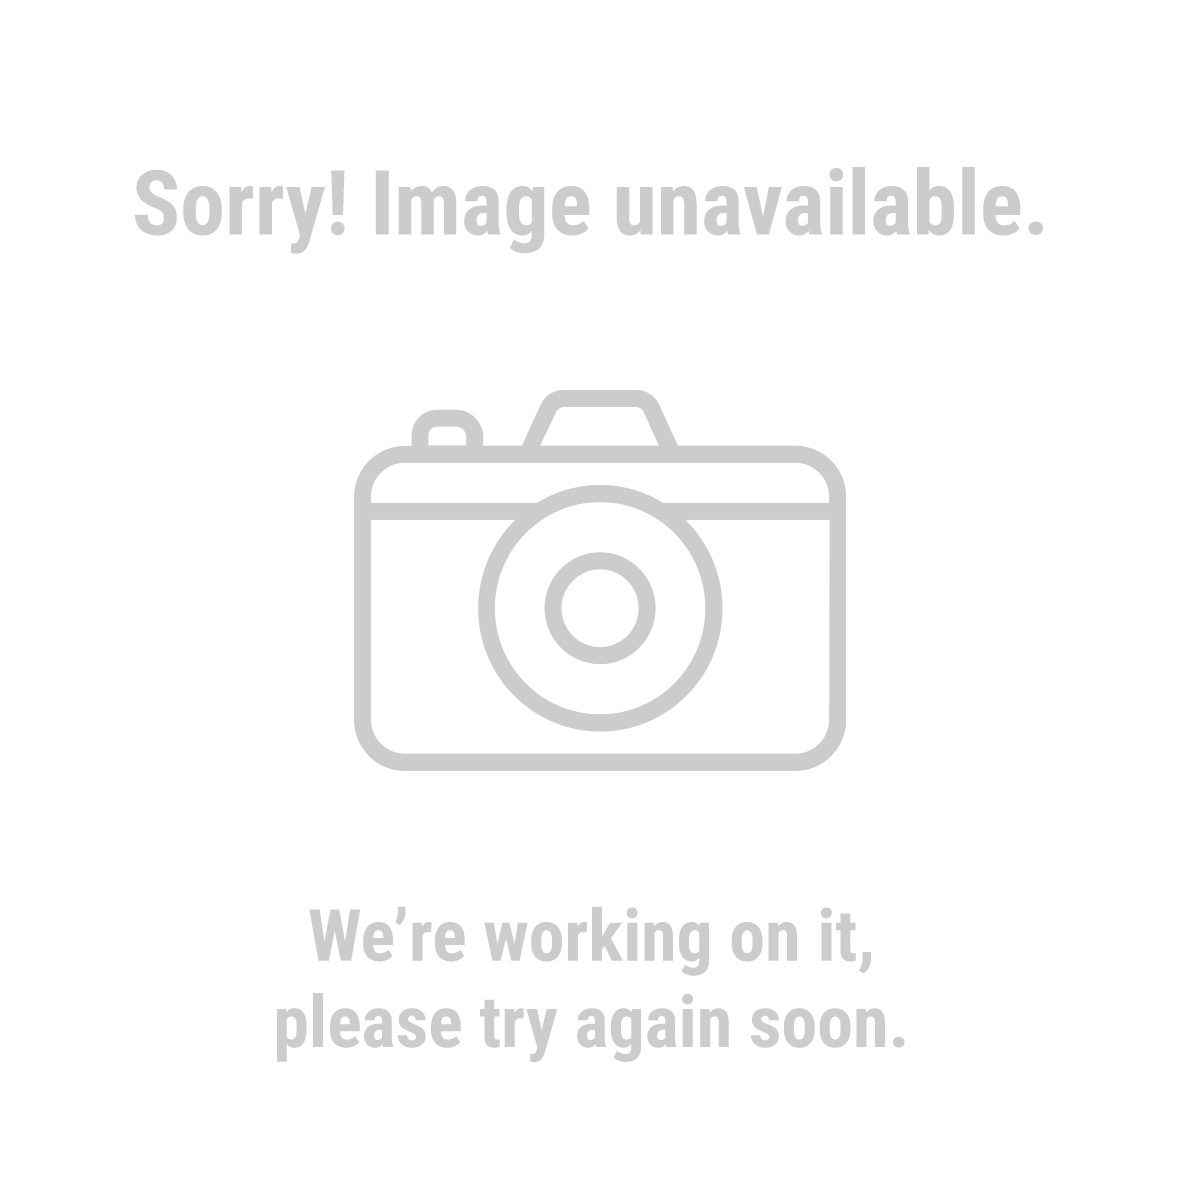 Storehouse 94457 18 Compartment Medium Storage Container